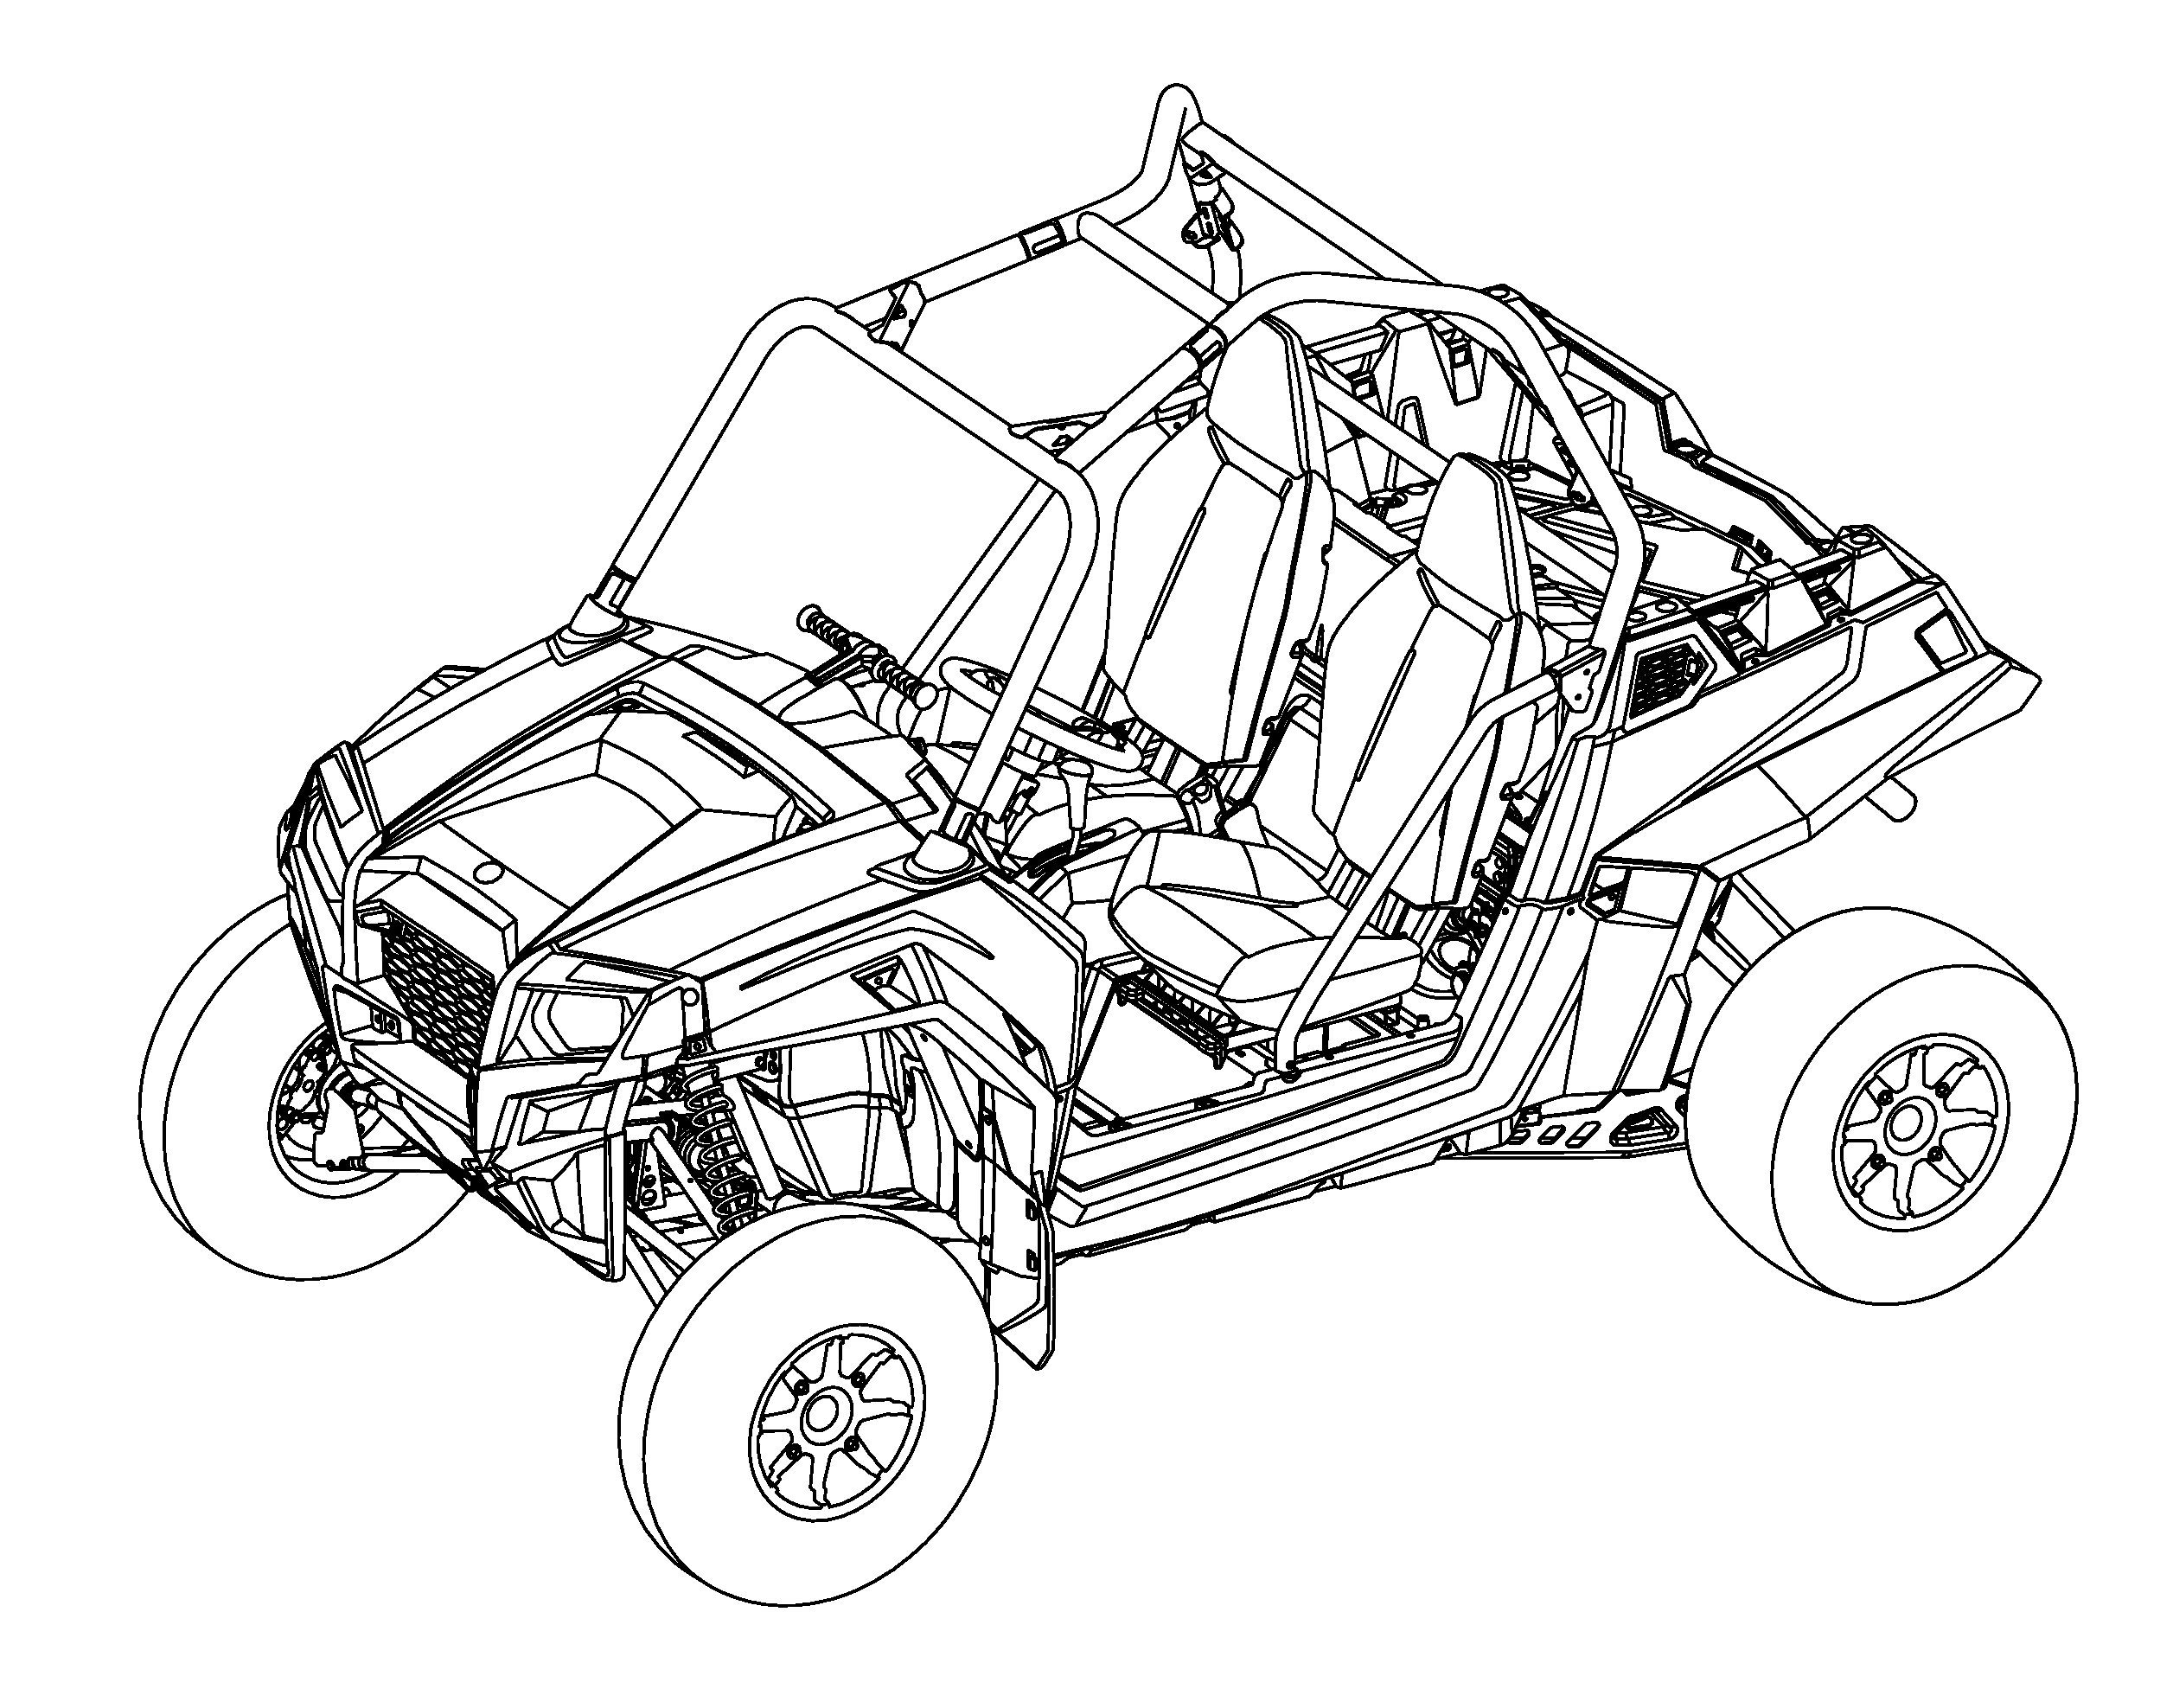 The Best Free Rzr Coloring Page Images Download From 4